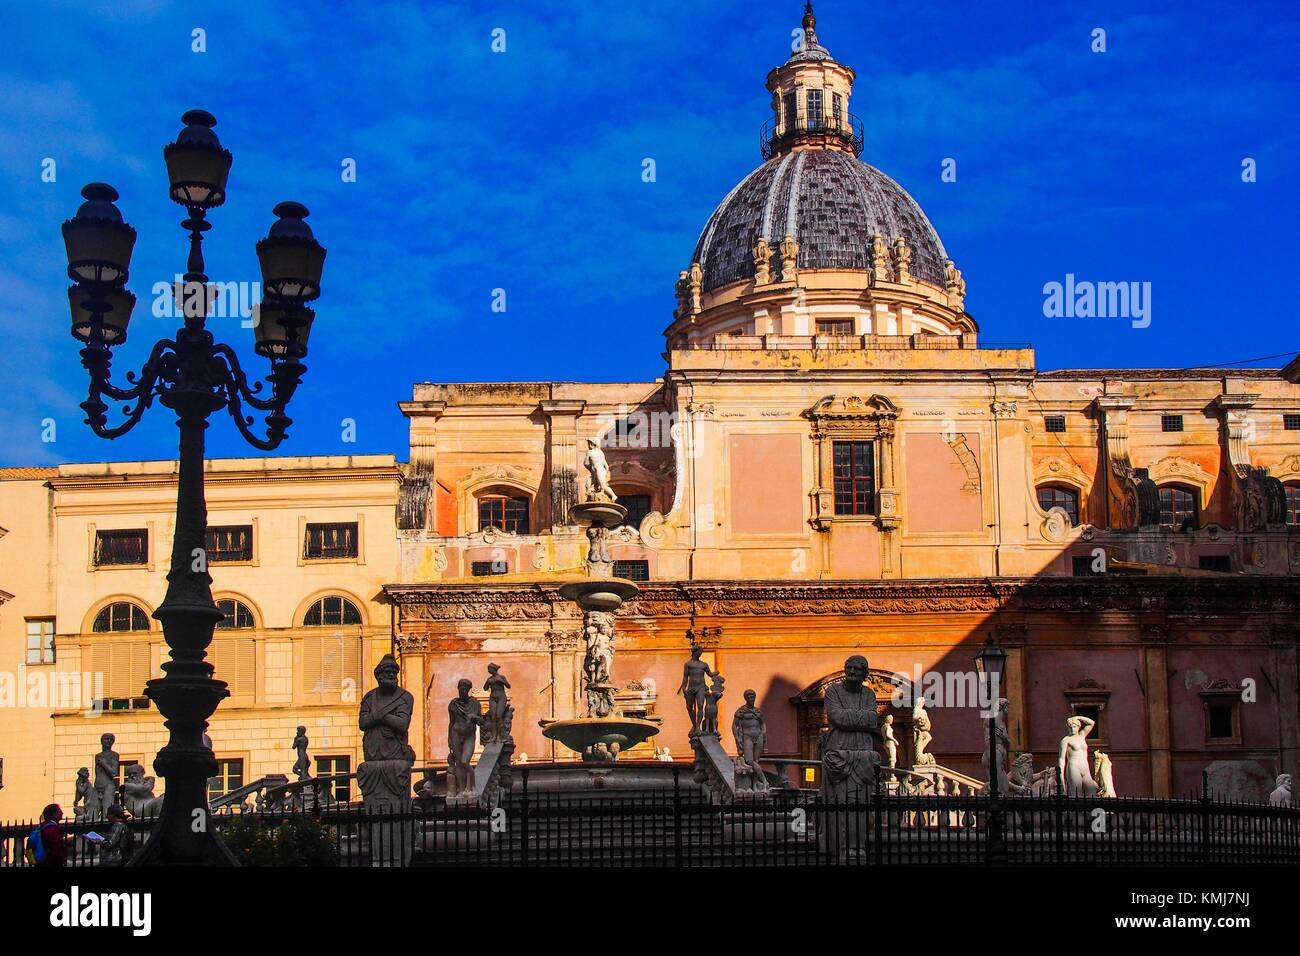 Italy-Sicily- Santa Catalina church at the old Palermo. - Stock Image